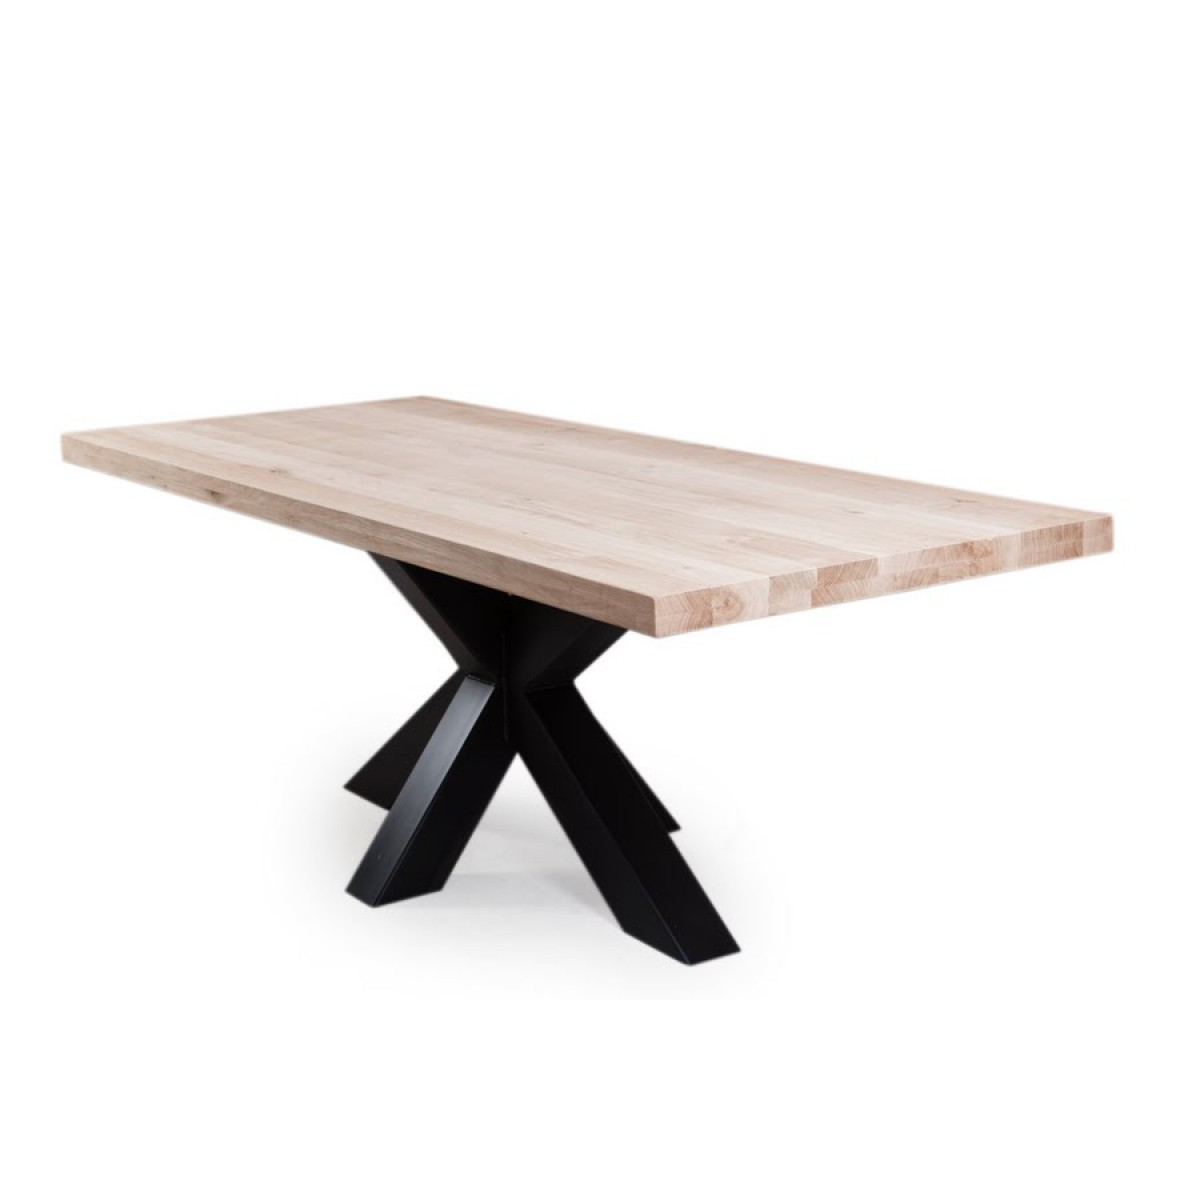 mikado_eettafel_middenpoot_kruispoot_warehouse_collectie